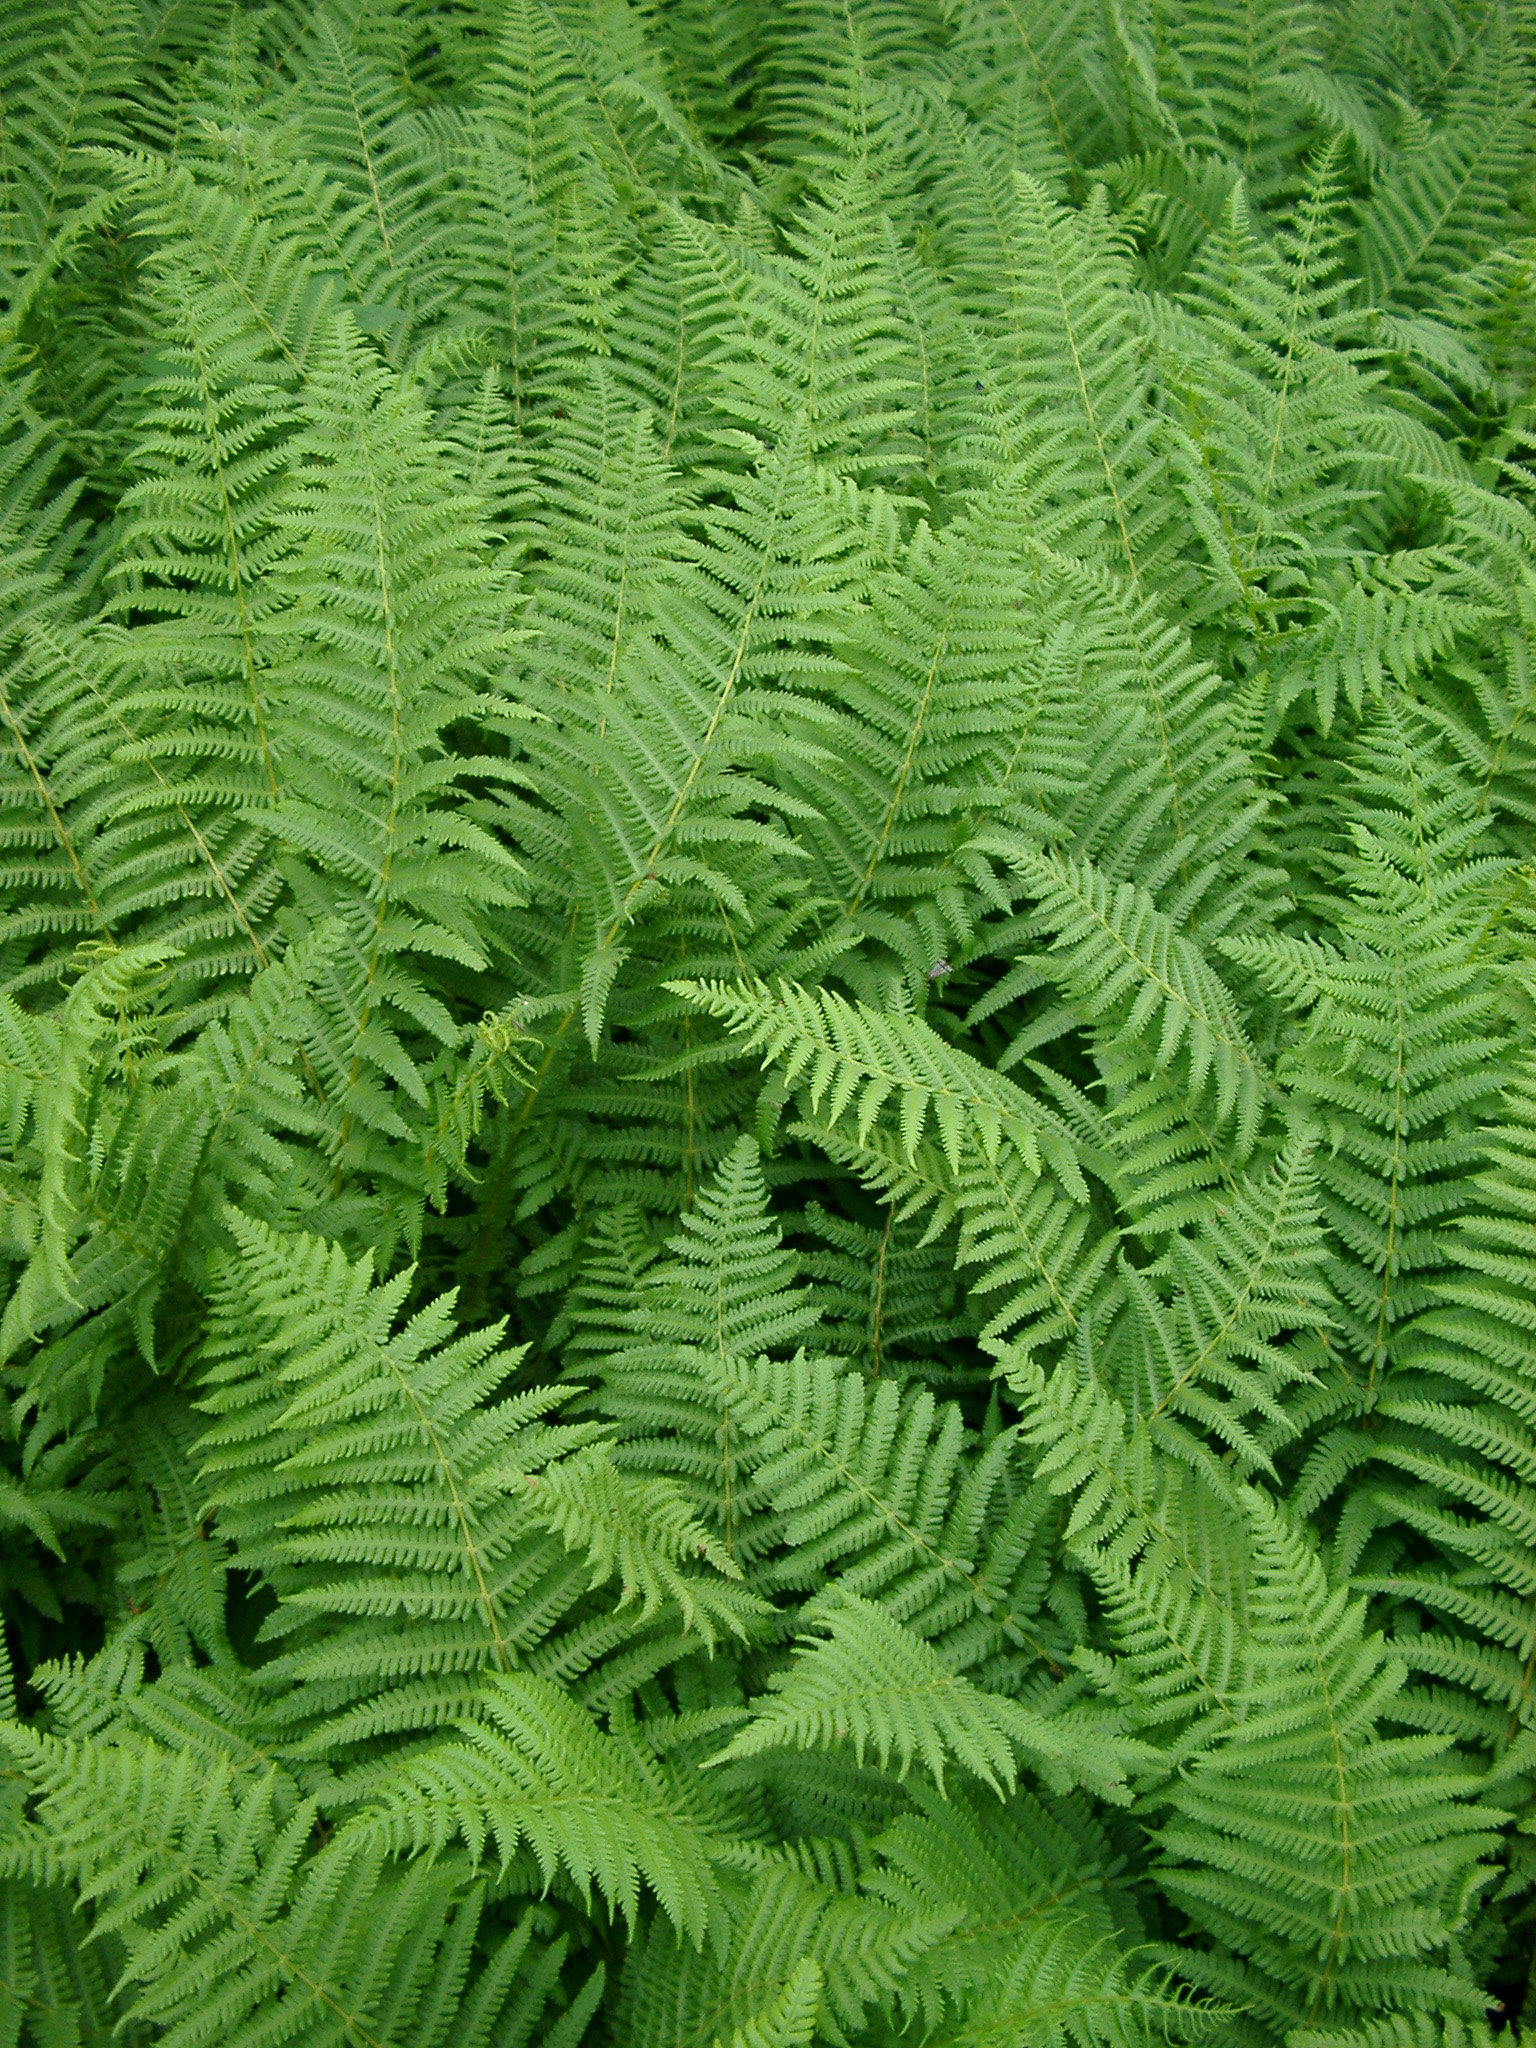 Background texture and natural pattern of lush green bracken leaves or fronds , full frame